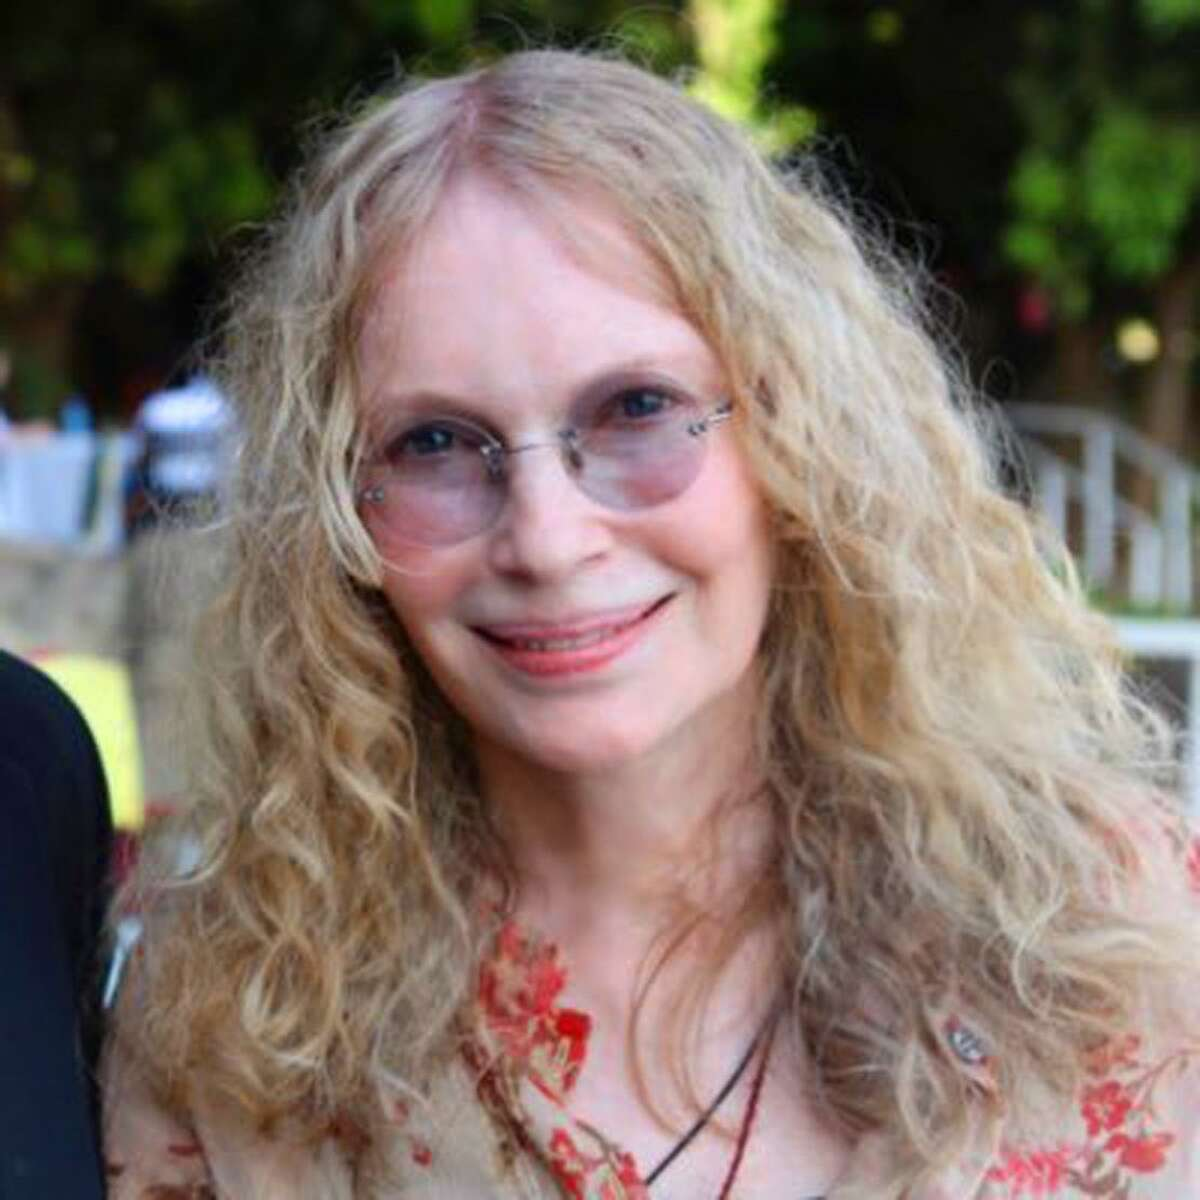 Mia Farrow, one of the honorary hosts of Pride in the Hills, set for June 15.